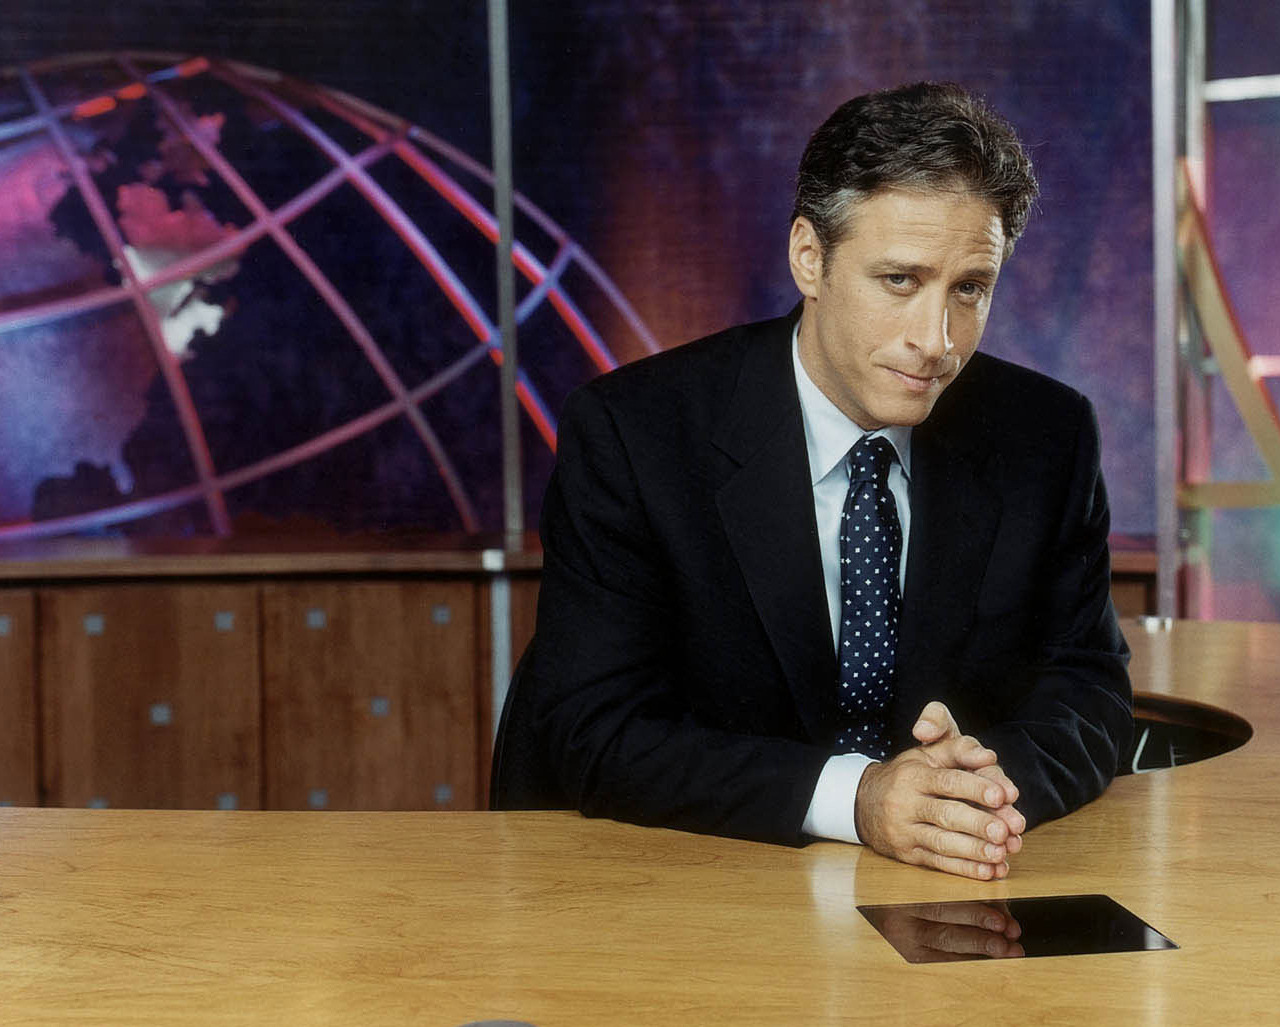 Jon Stewart Returns to Work as Host on The Daily Show After Labor Day2 Jon Stewart Returns to Work as Host on The Daily Show After Labor Day